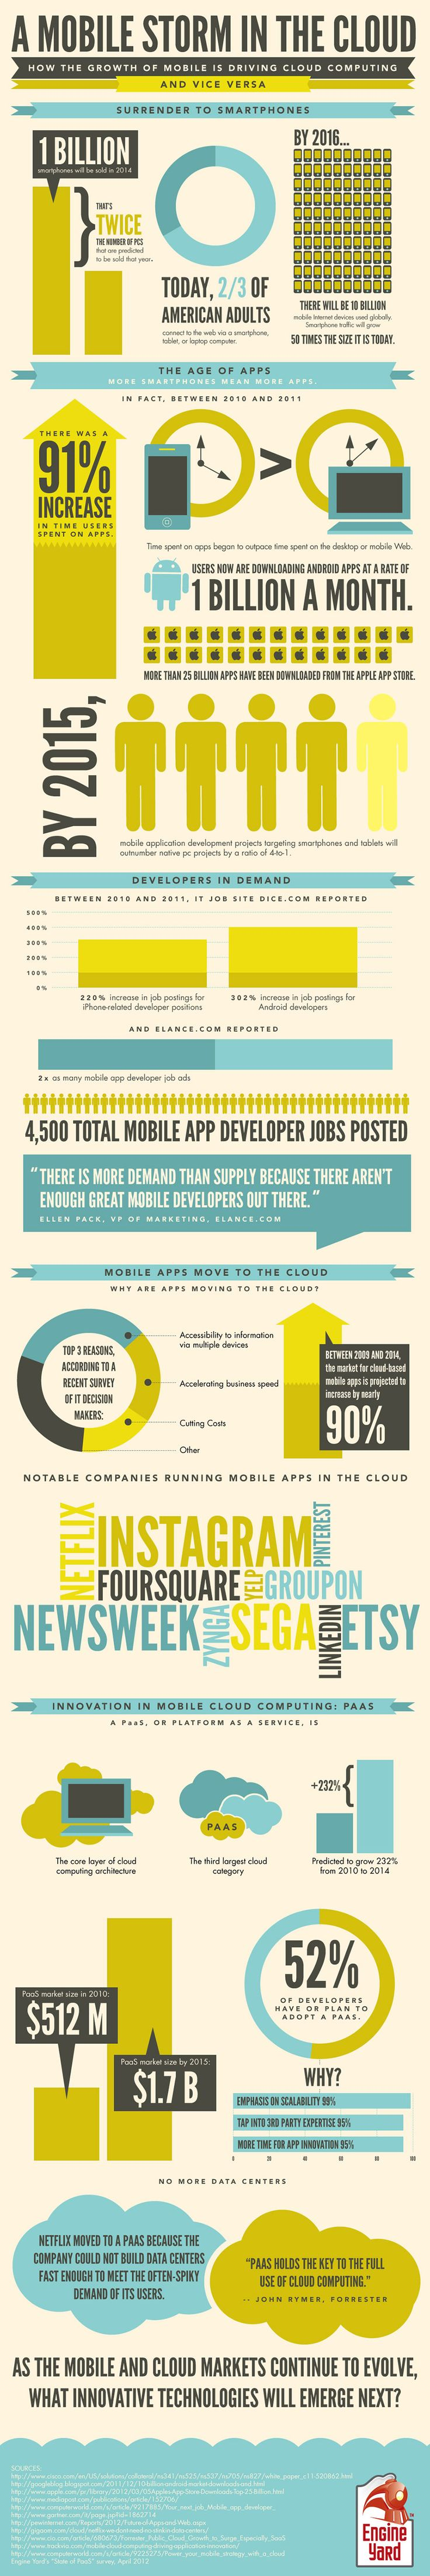 Mobile apps and the cloud are going all the way to the altar together. They've been in a relationship for several years and are now inseparable. [Infographic]